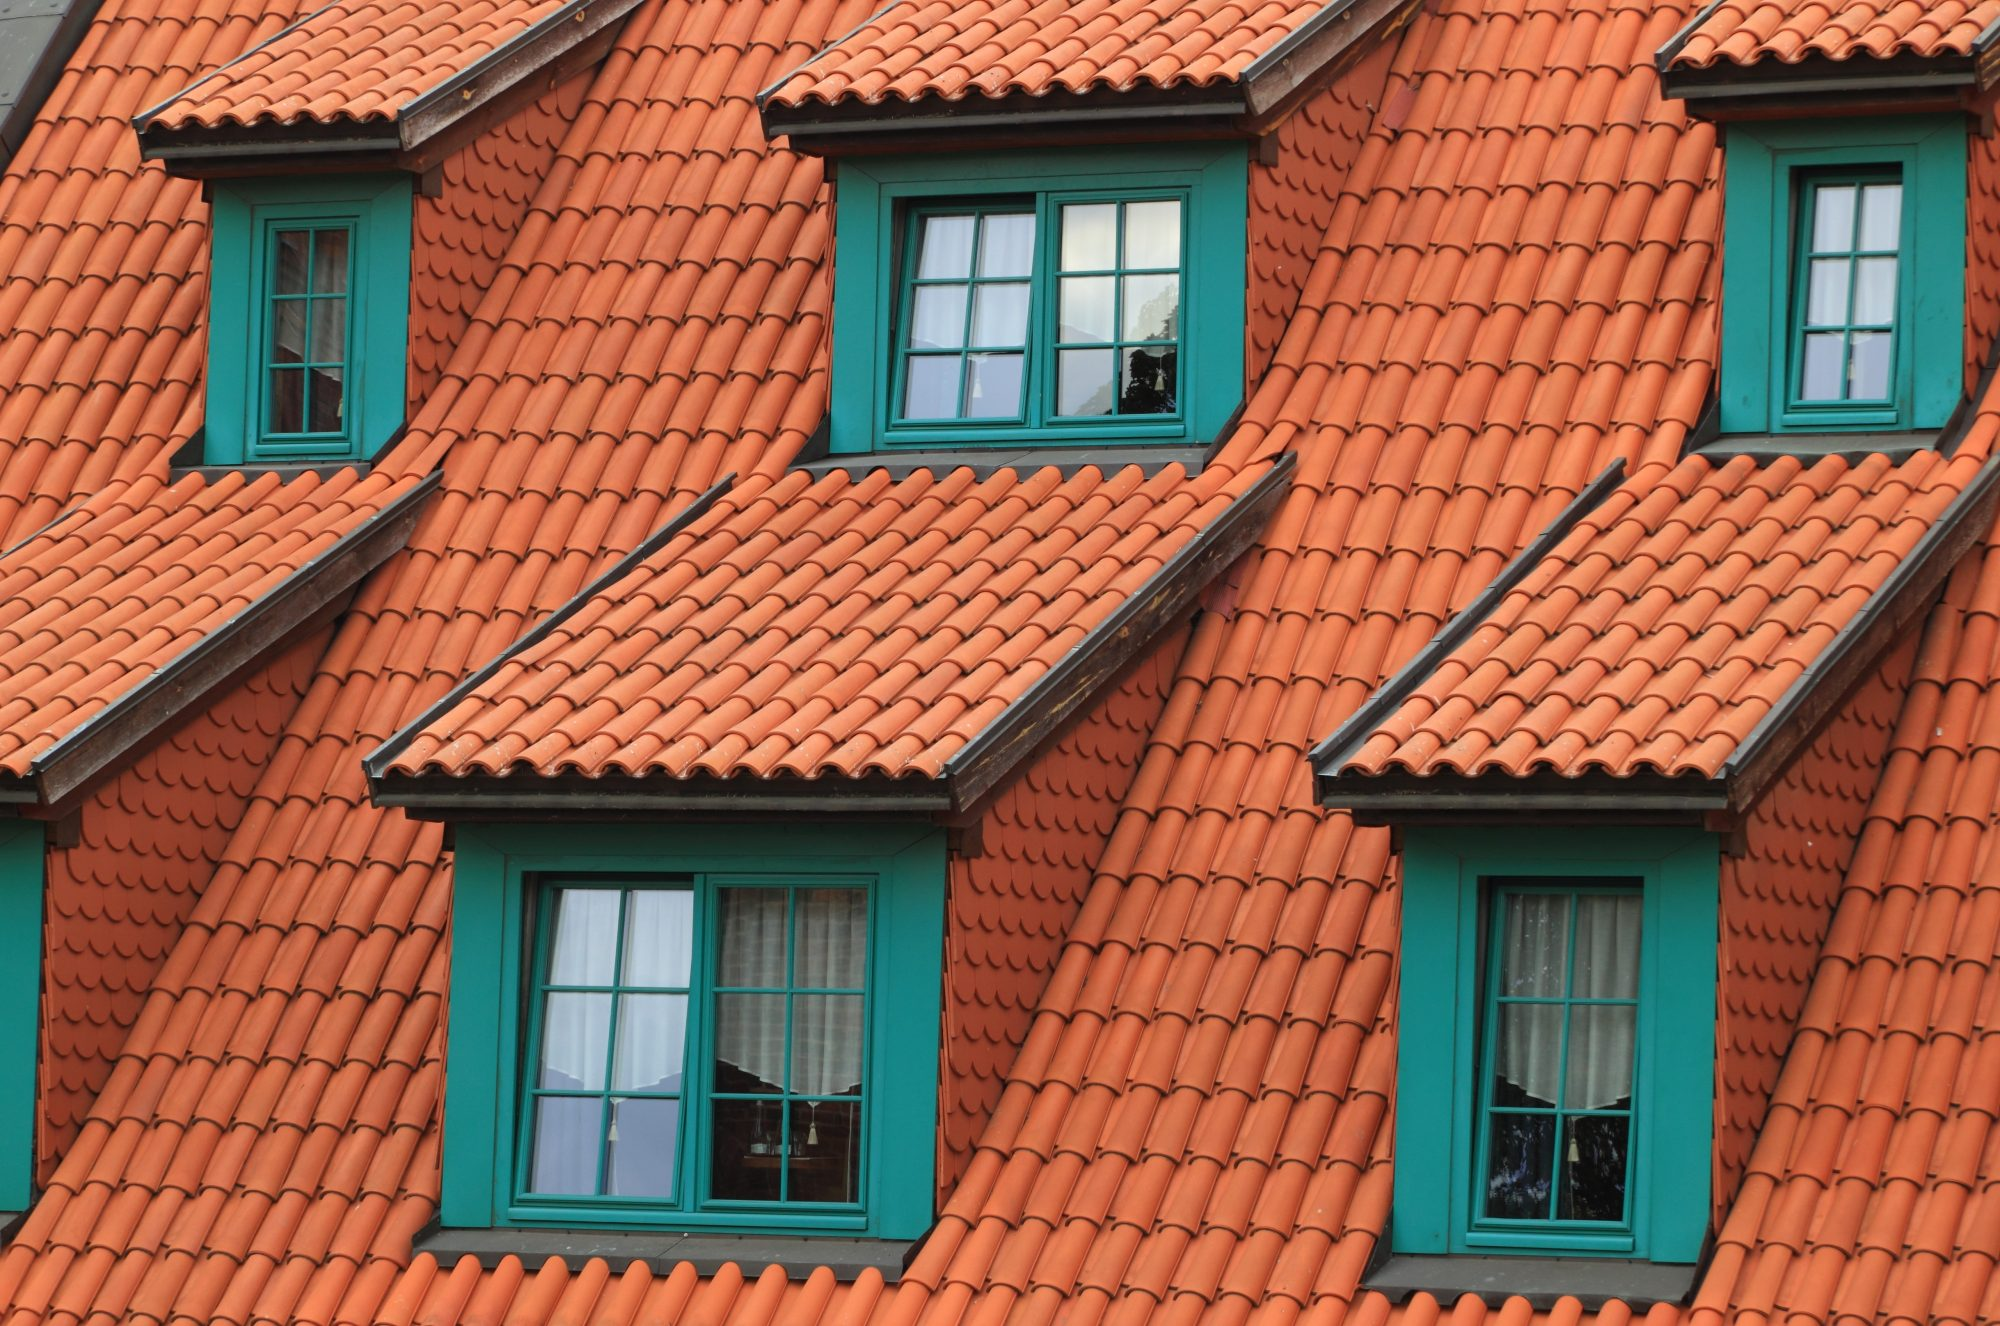 Types of roofing In Other Countries